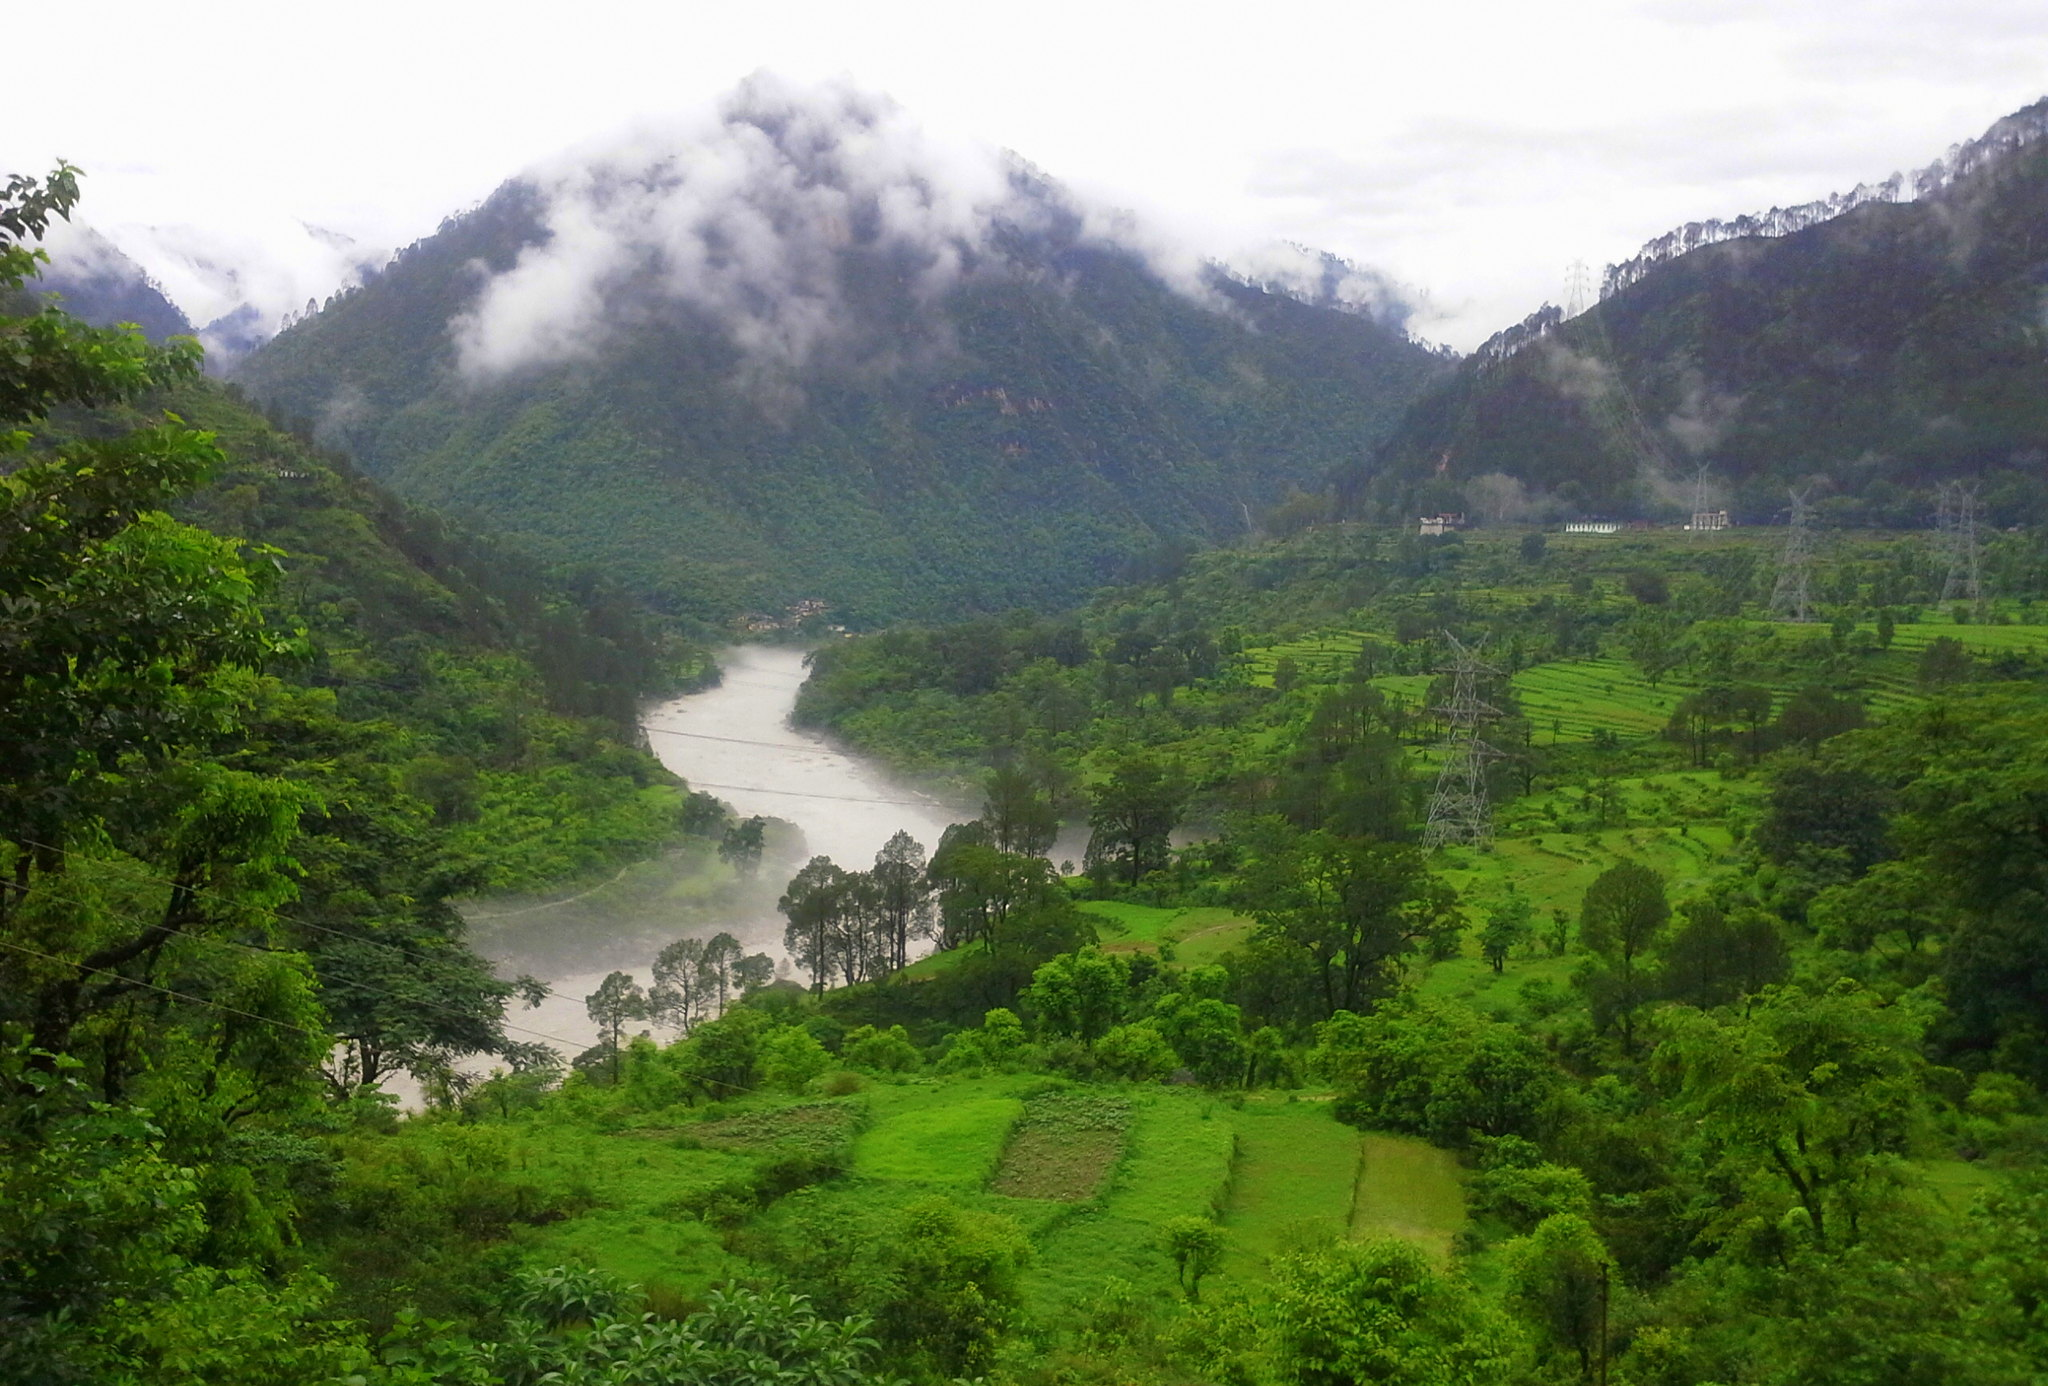 One can see beautiful scenery on the uttarakhand parayags road trip